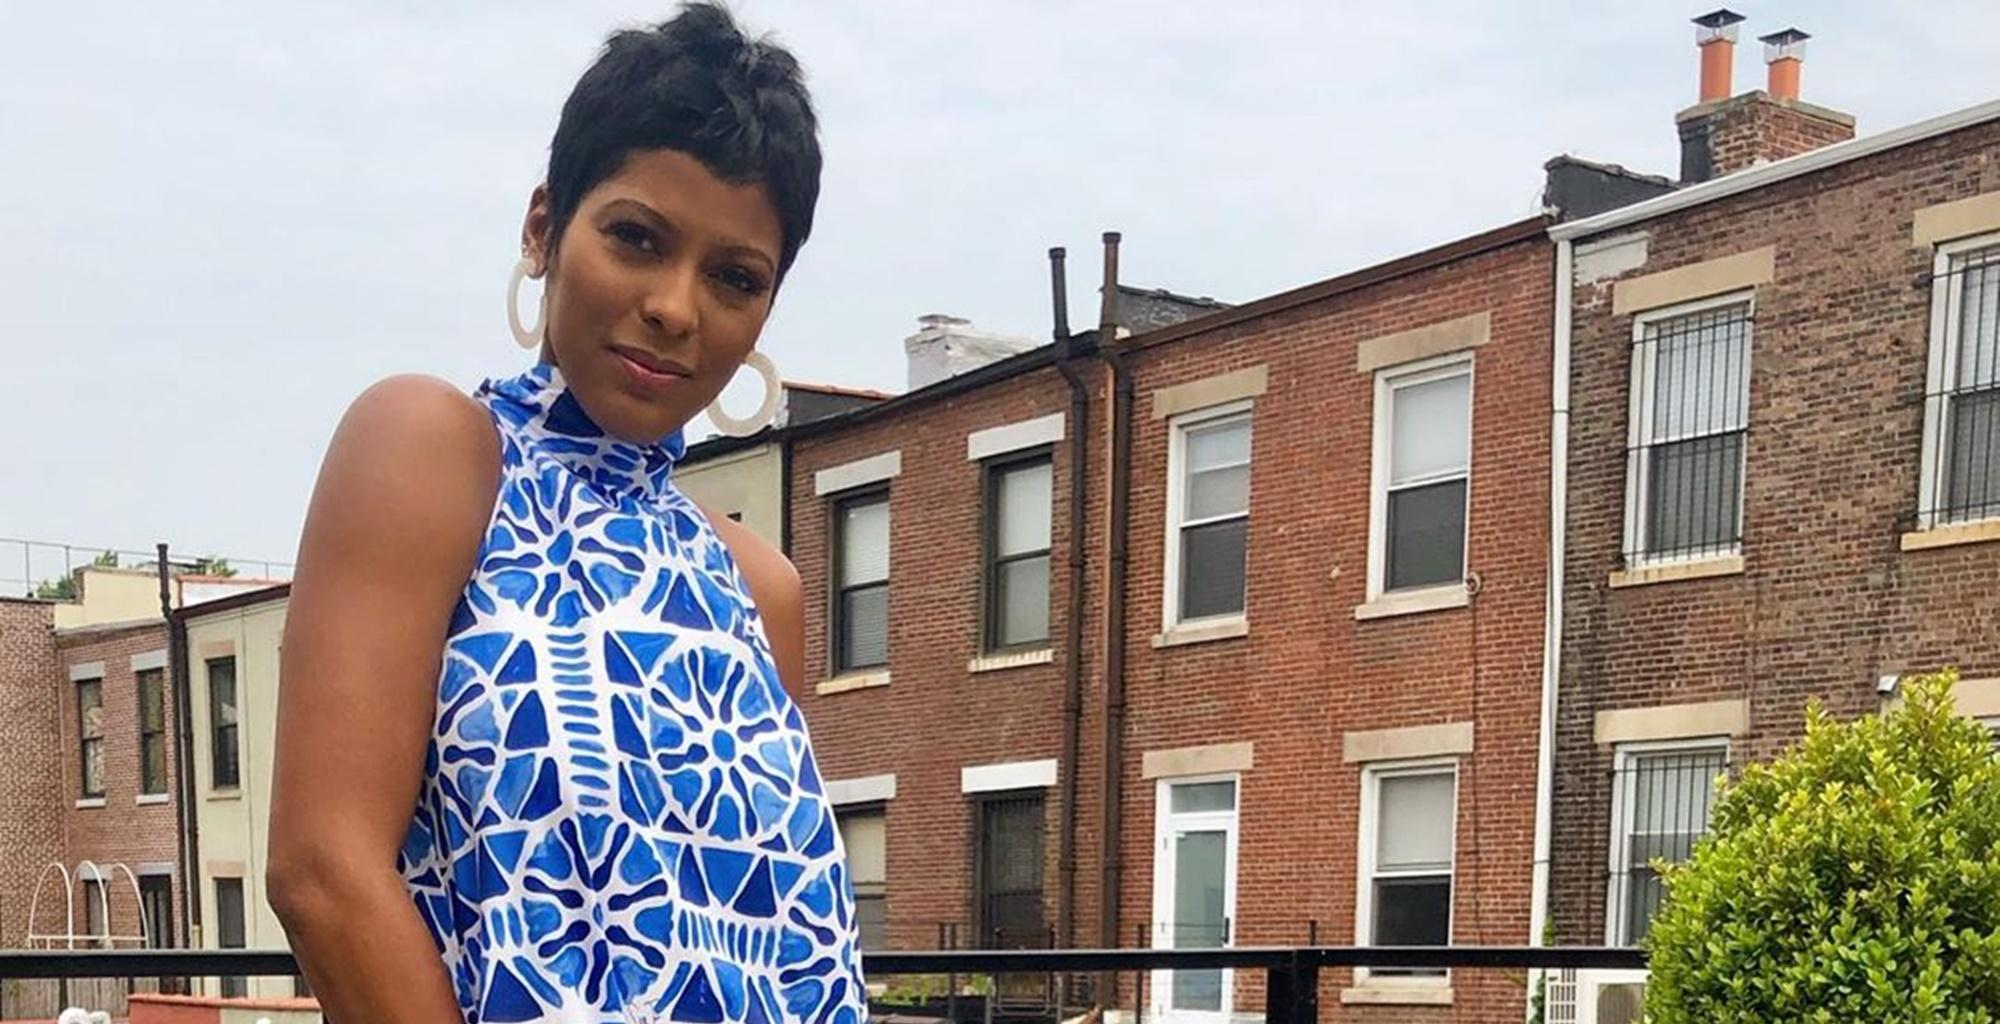 Tamron Hall Attends Event With Stunning Nieces -- Photo Leaves Fans Confused And Asking Questions